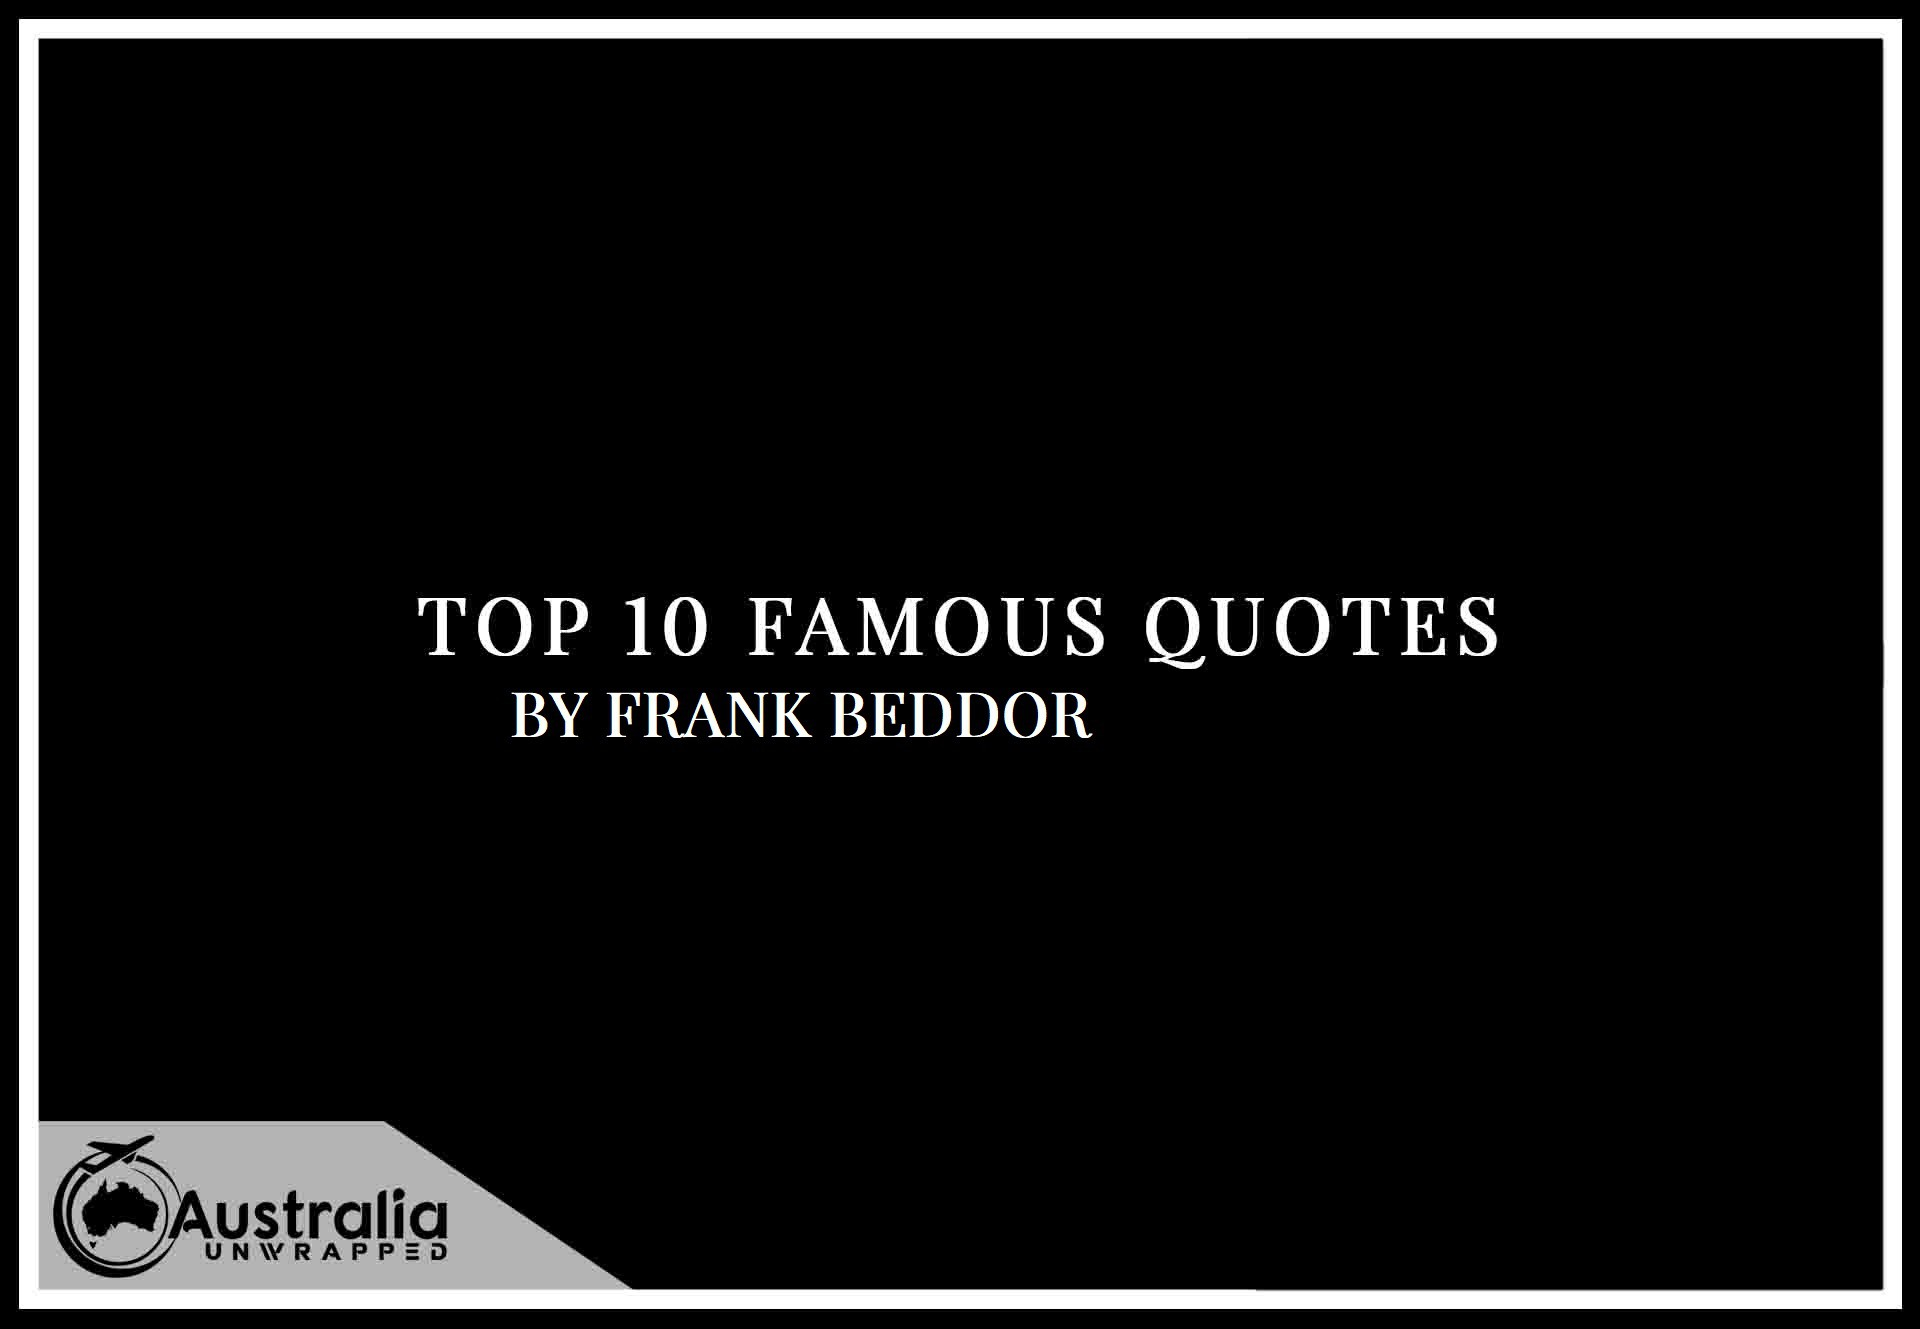 Top 10 Famous Quotes by Author Frank Beddor